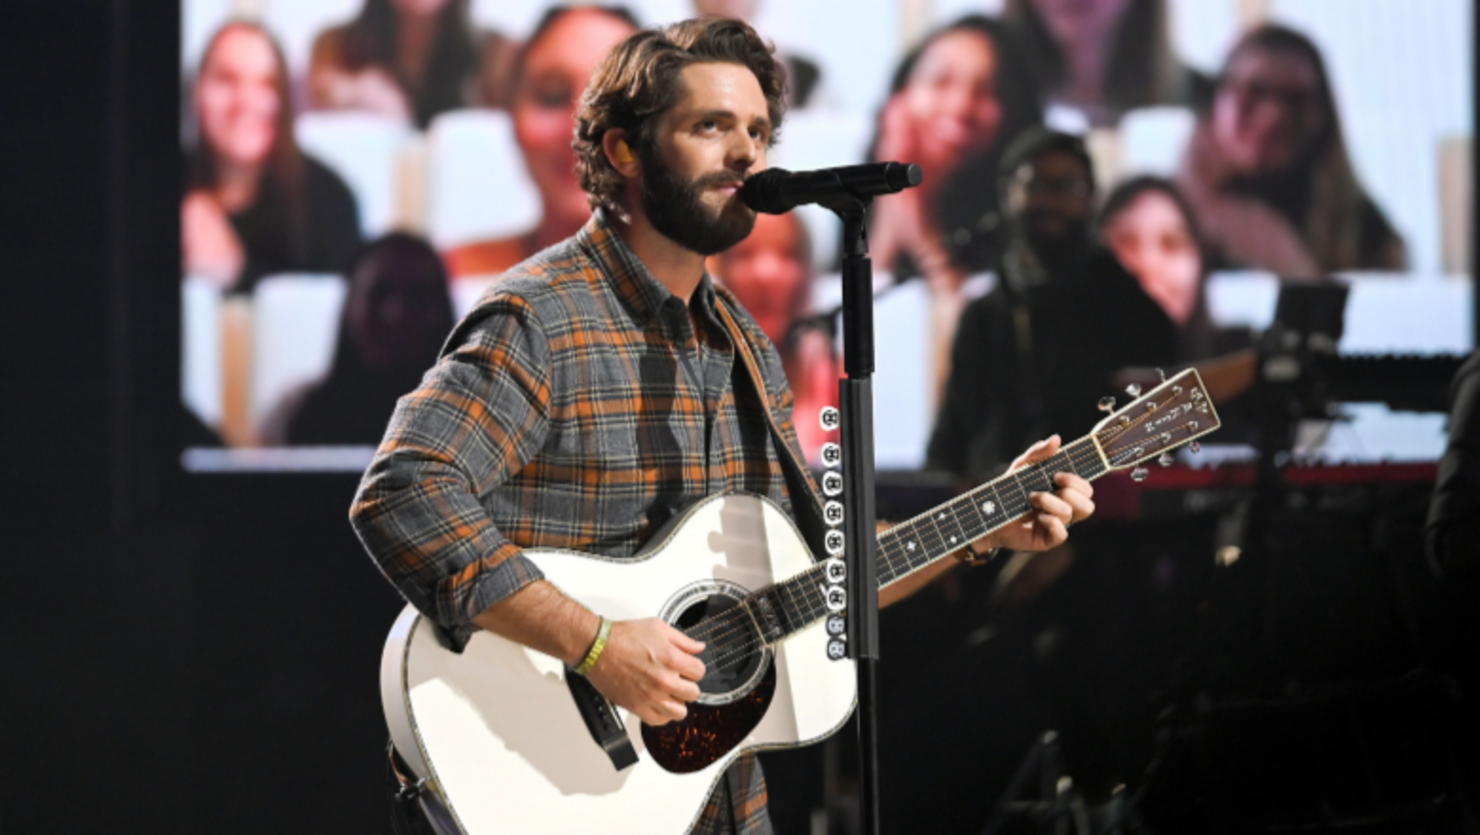 Thomas Rhett Wants To Remember To 'Slow Down' In 2021